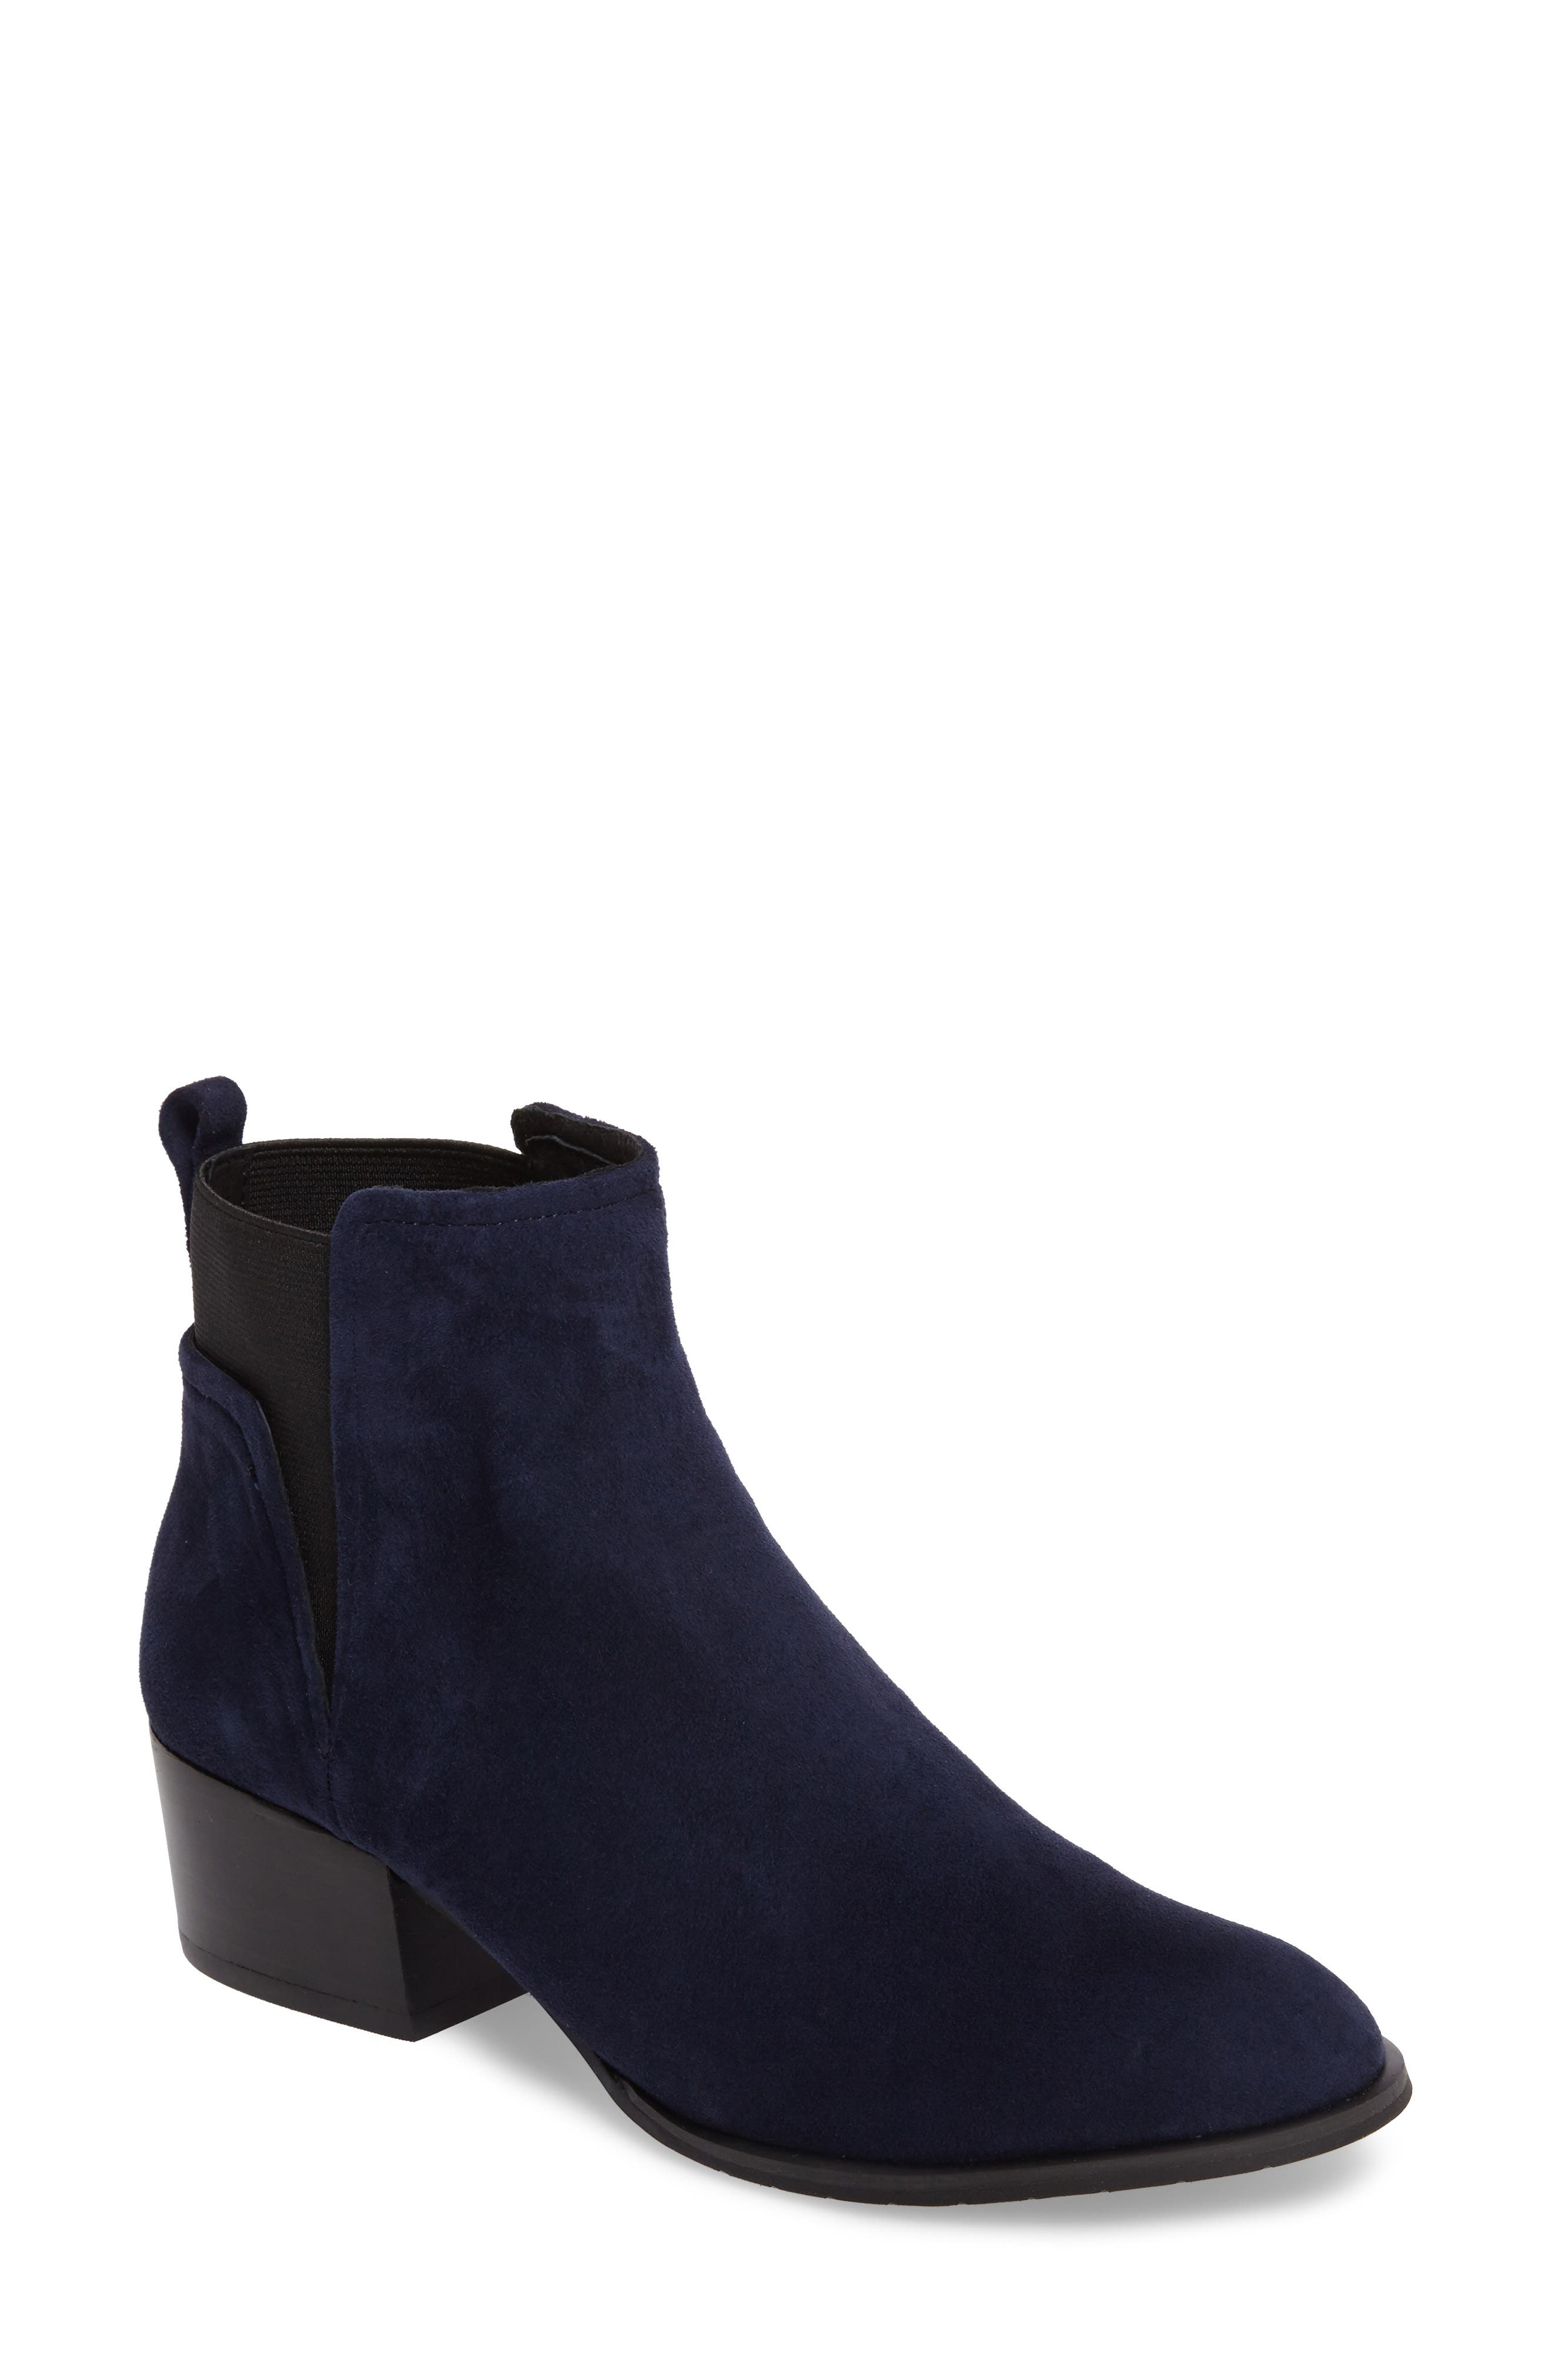 Artie Bootie,                             Main thumbnail 1, color,                             Navy Suede